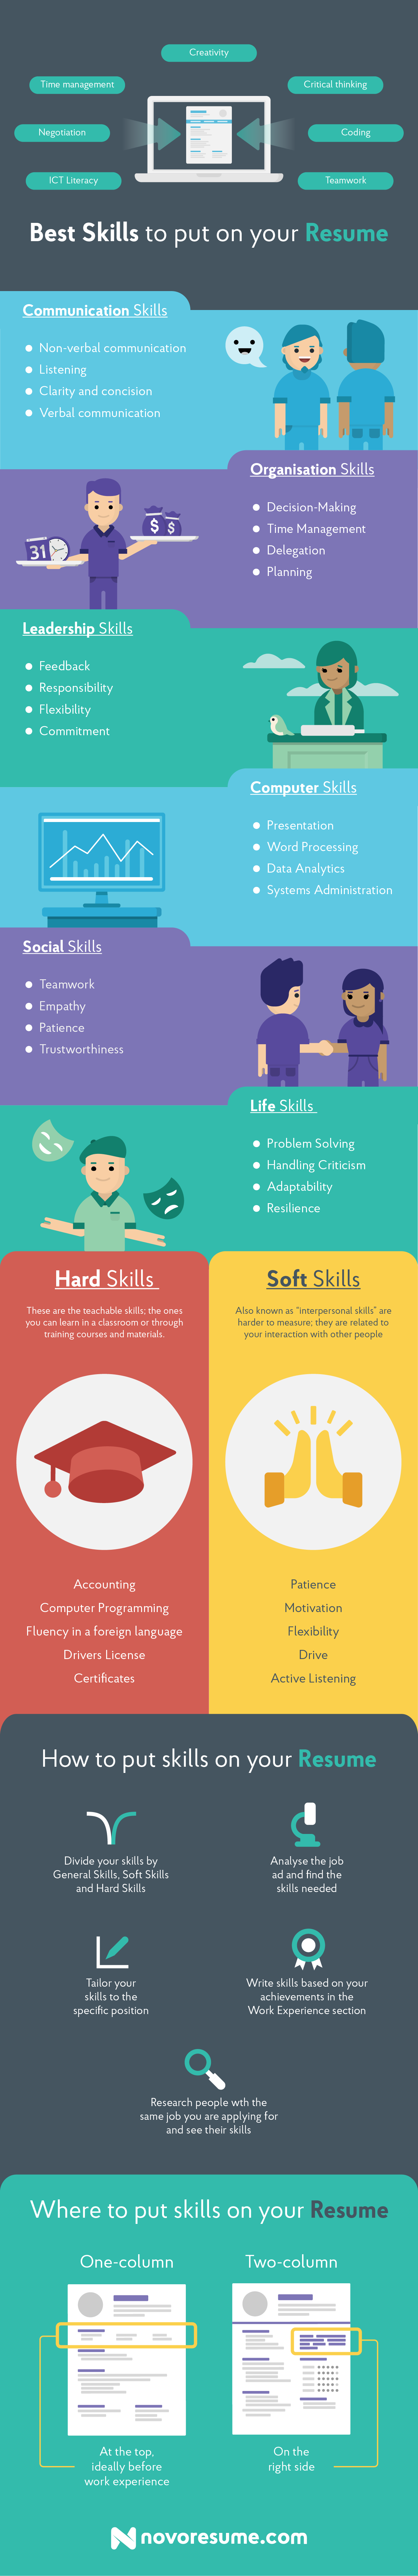 Skills For Resume in 2019 [+100 Examples & Infographic